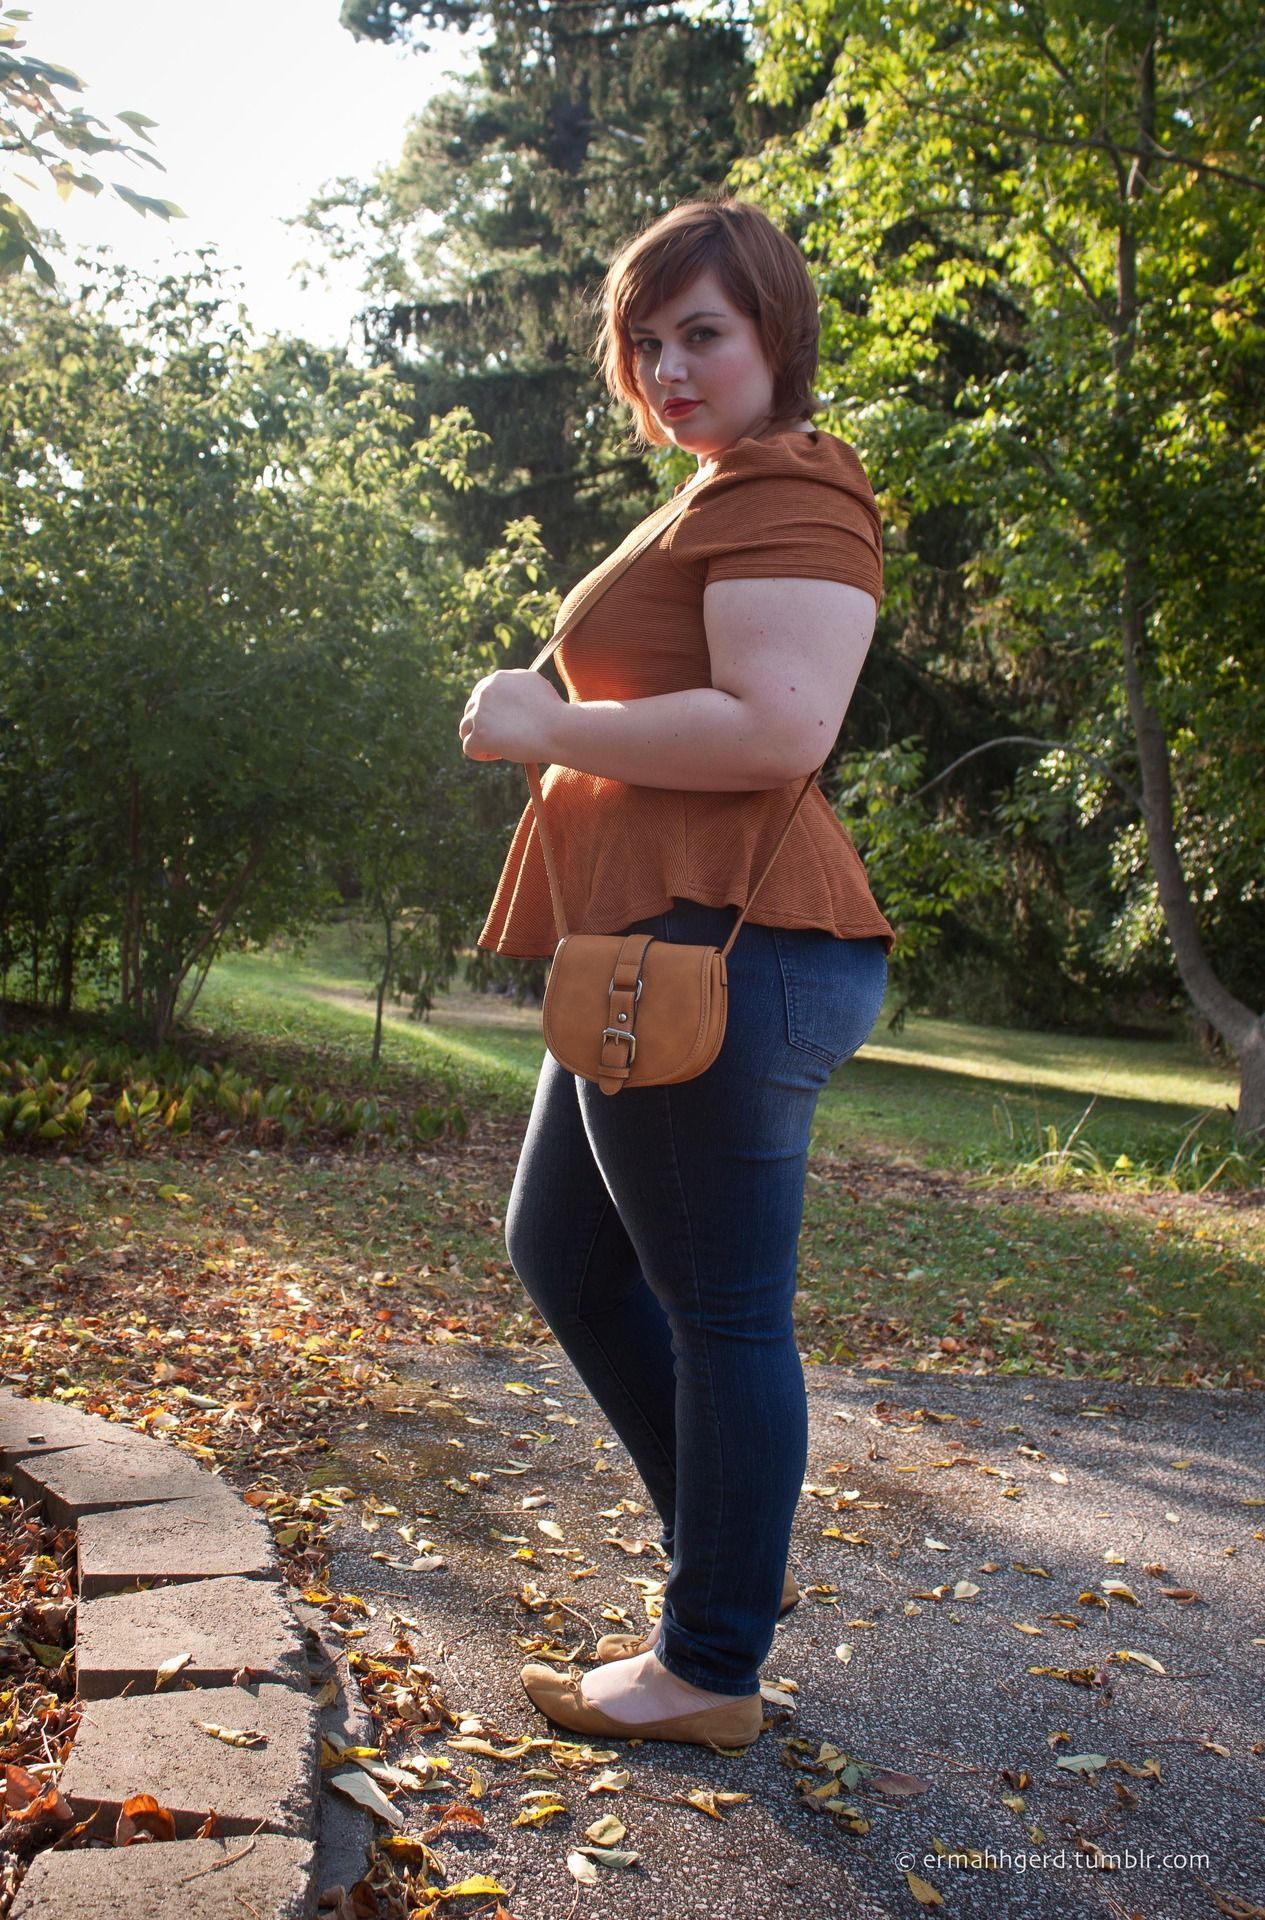 cute chubby girl outfits